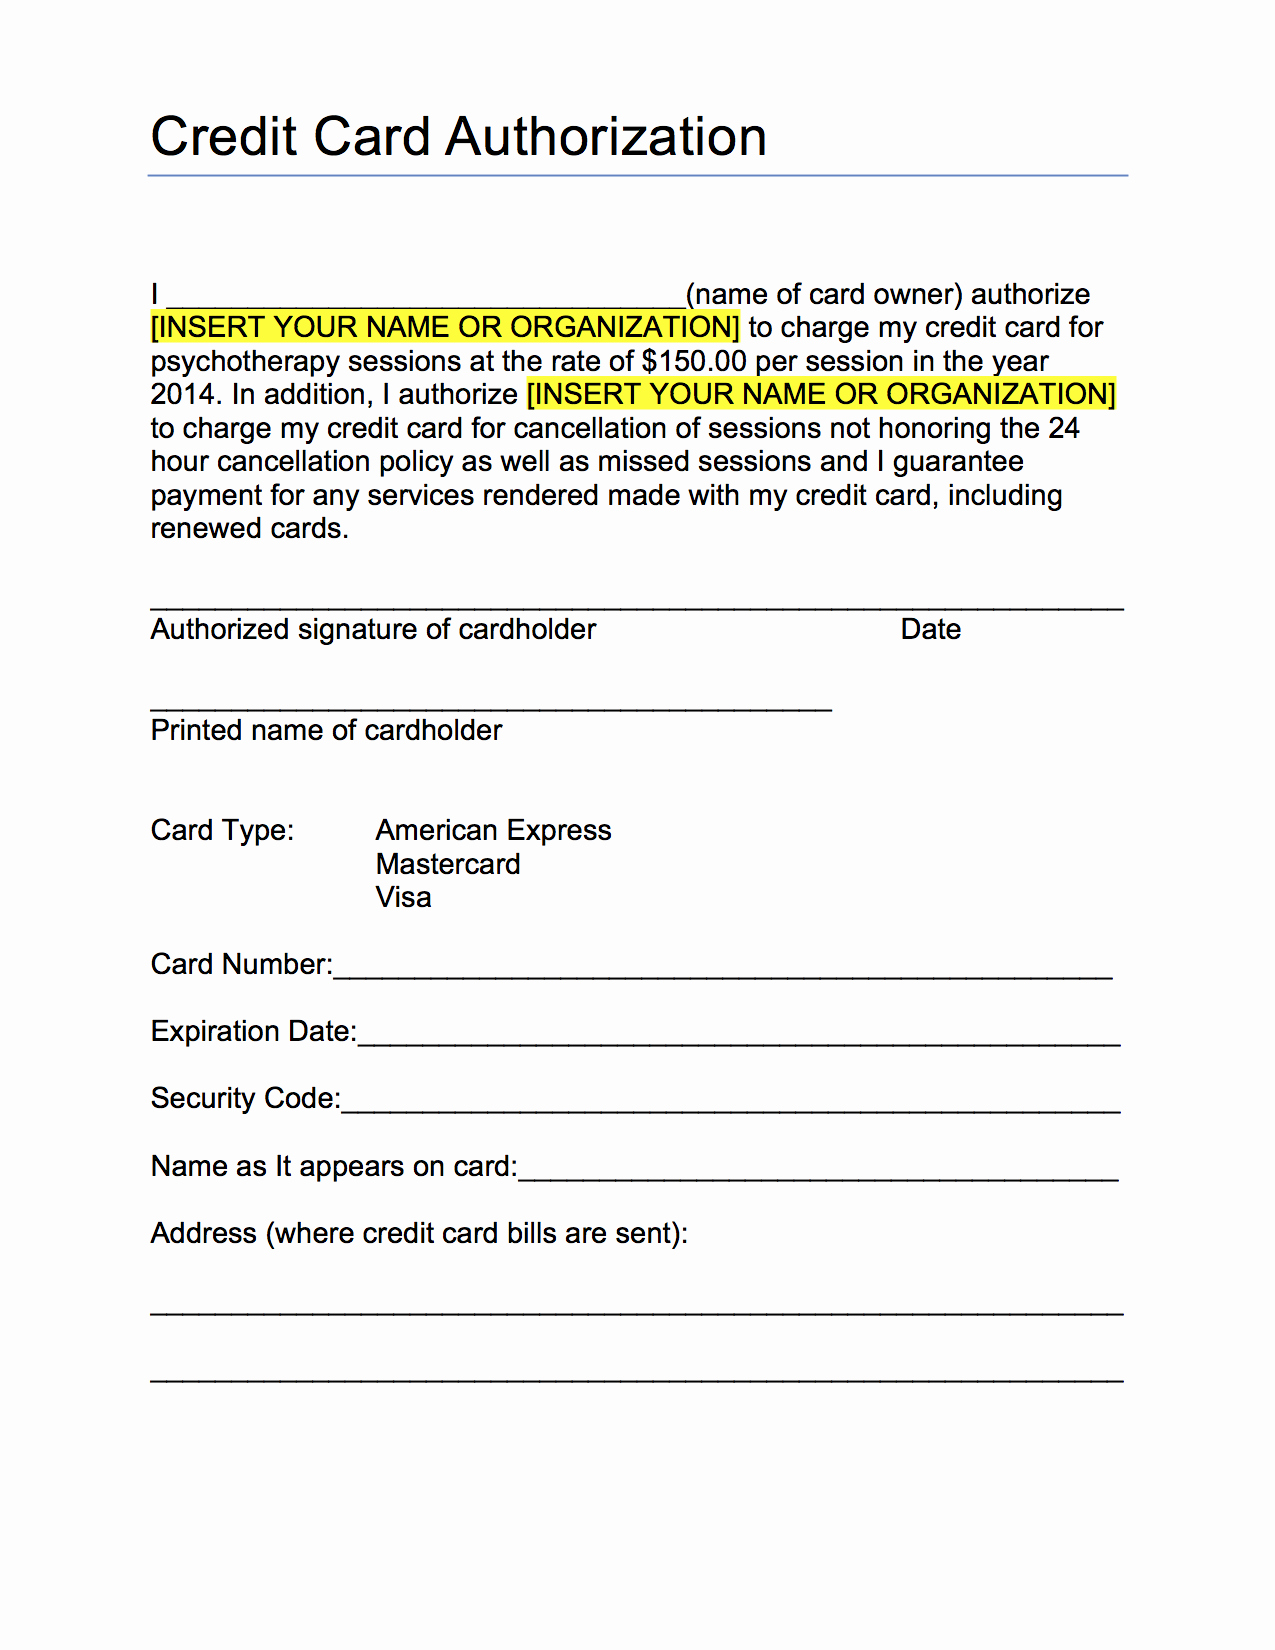 Credit Card Auth form Awesome Ps form 3971 Fillable Keywordsfind